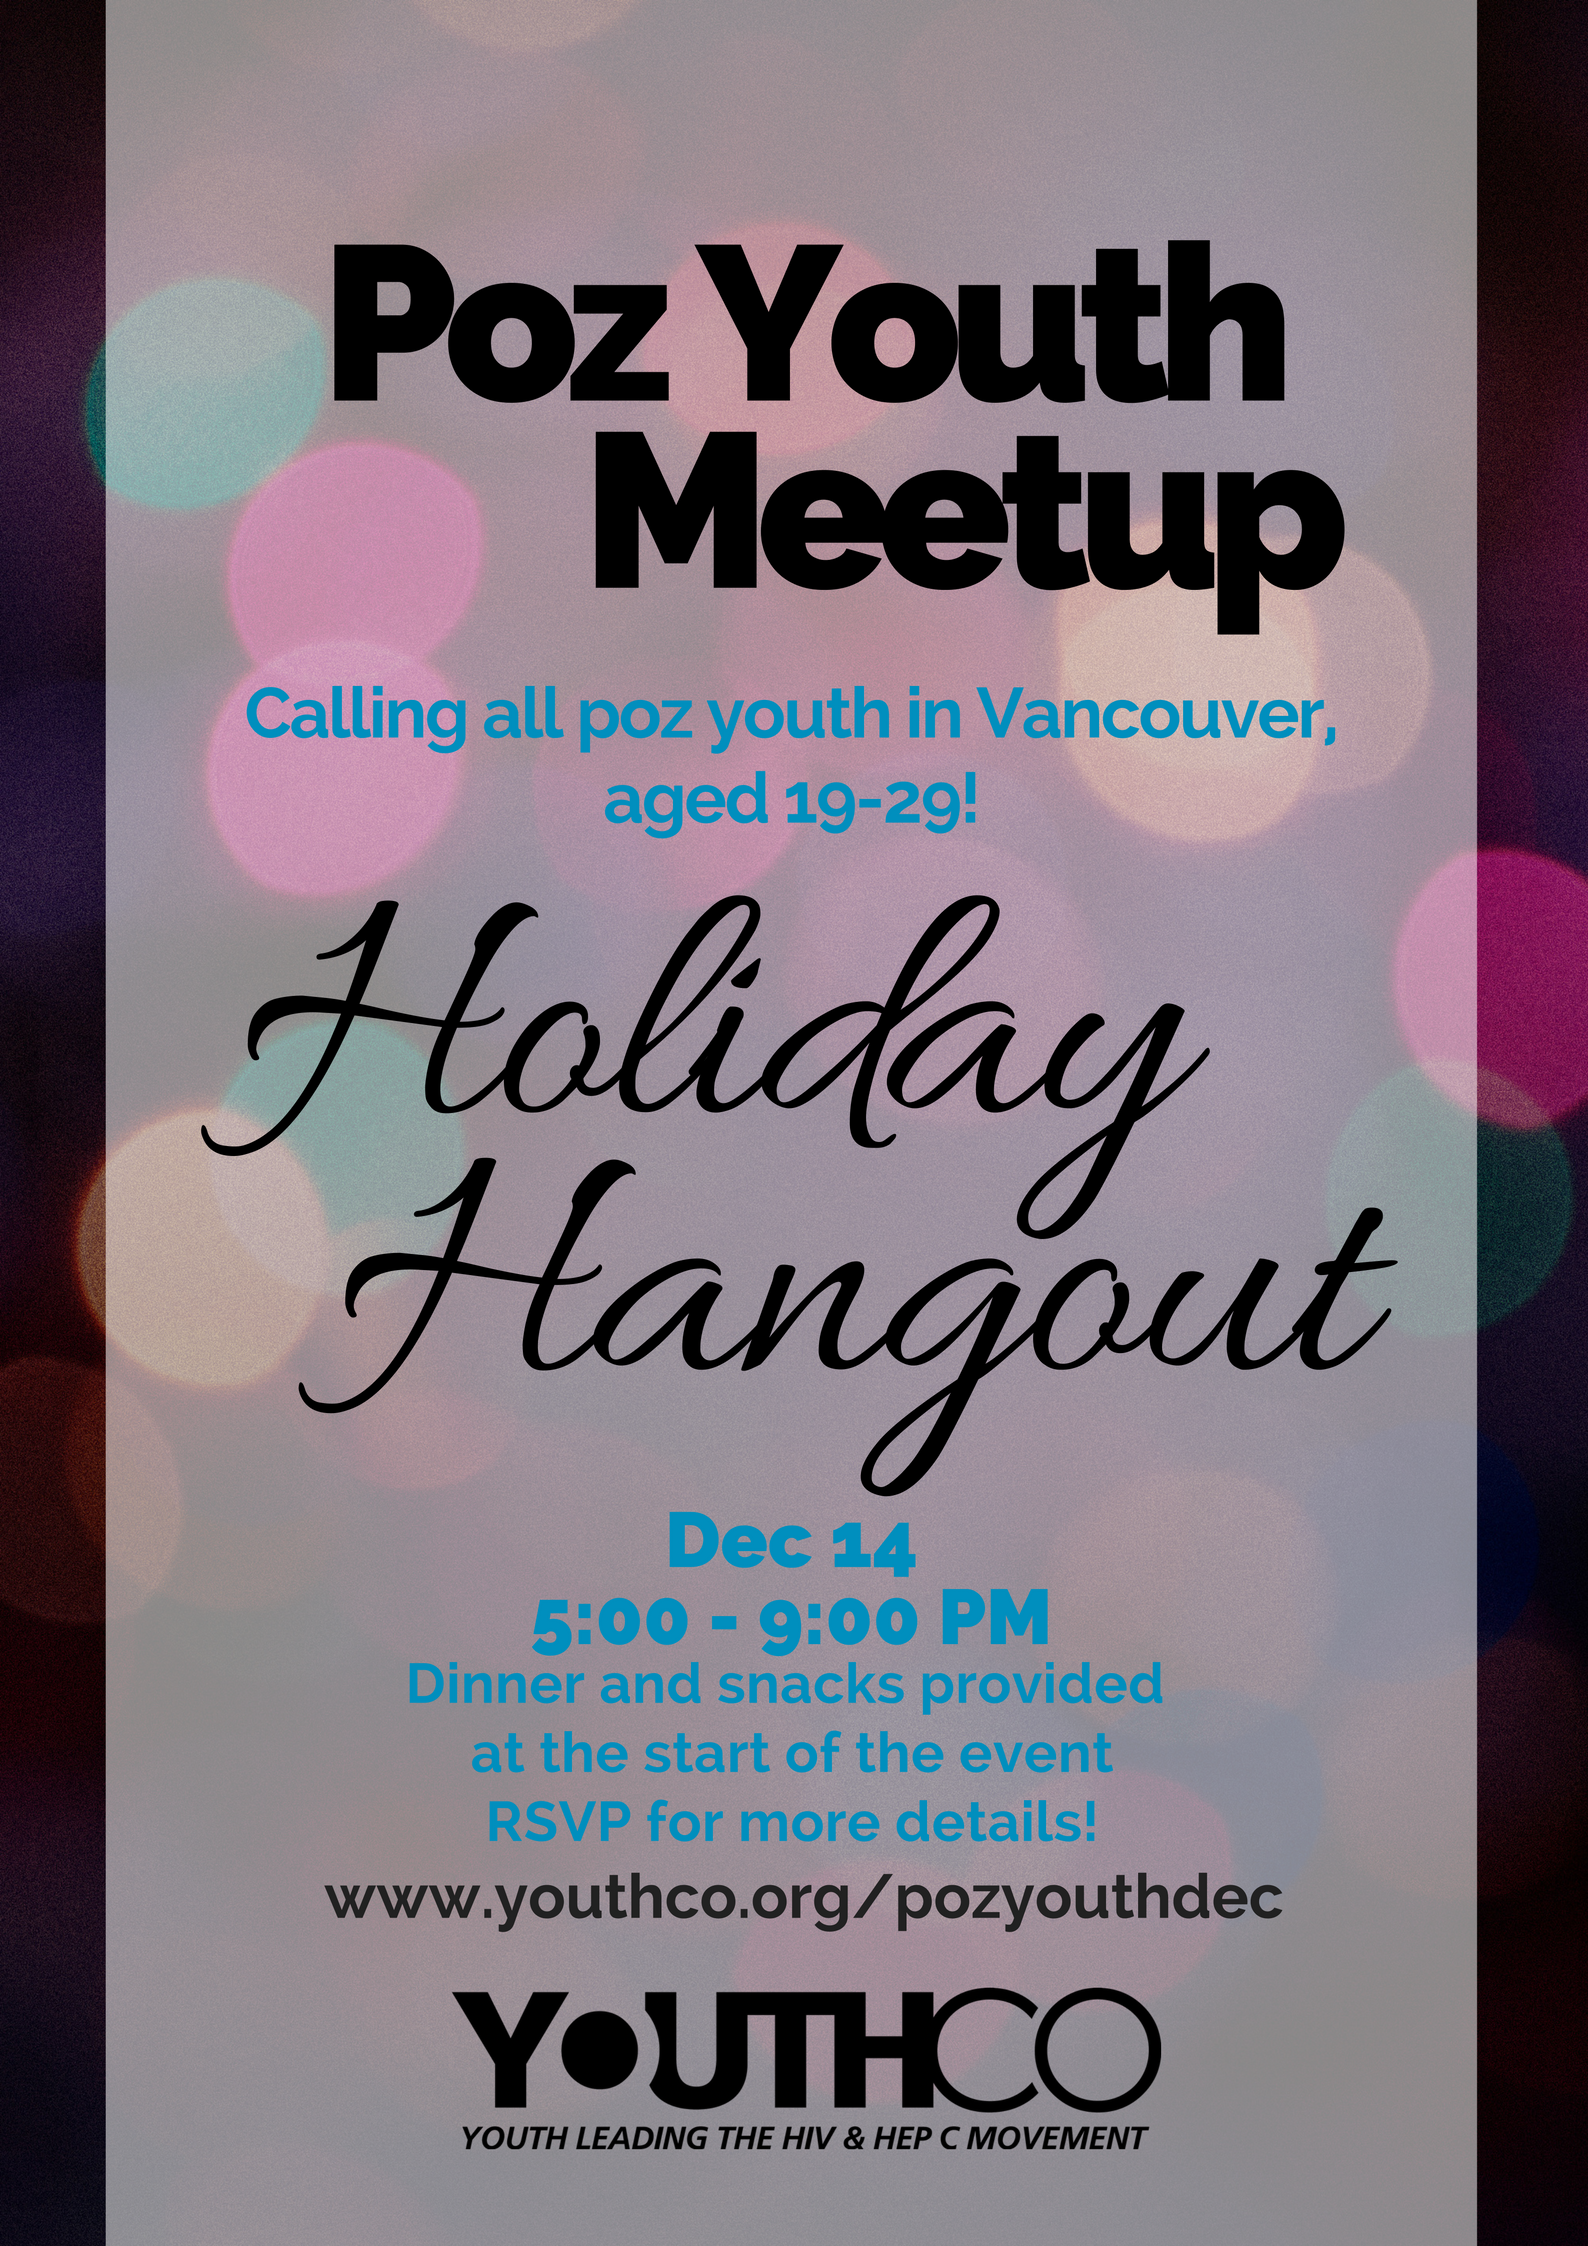 Poster_Poz_Youth_201712_Holiday_Hangout.png